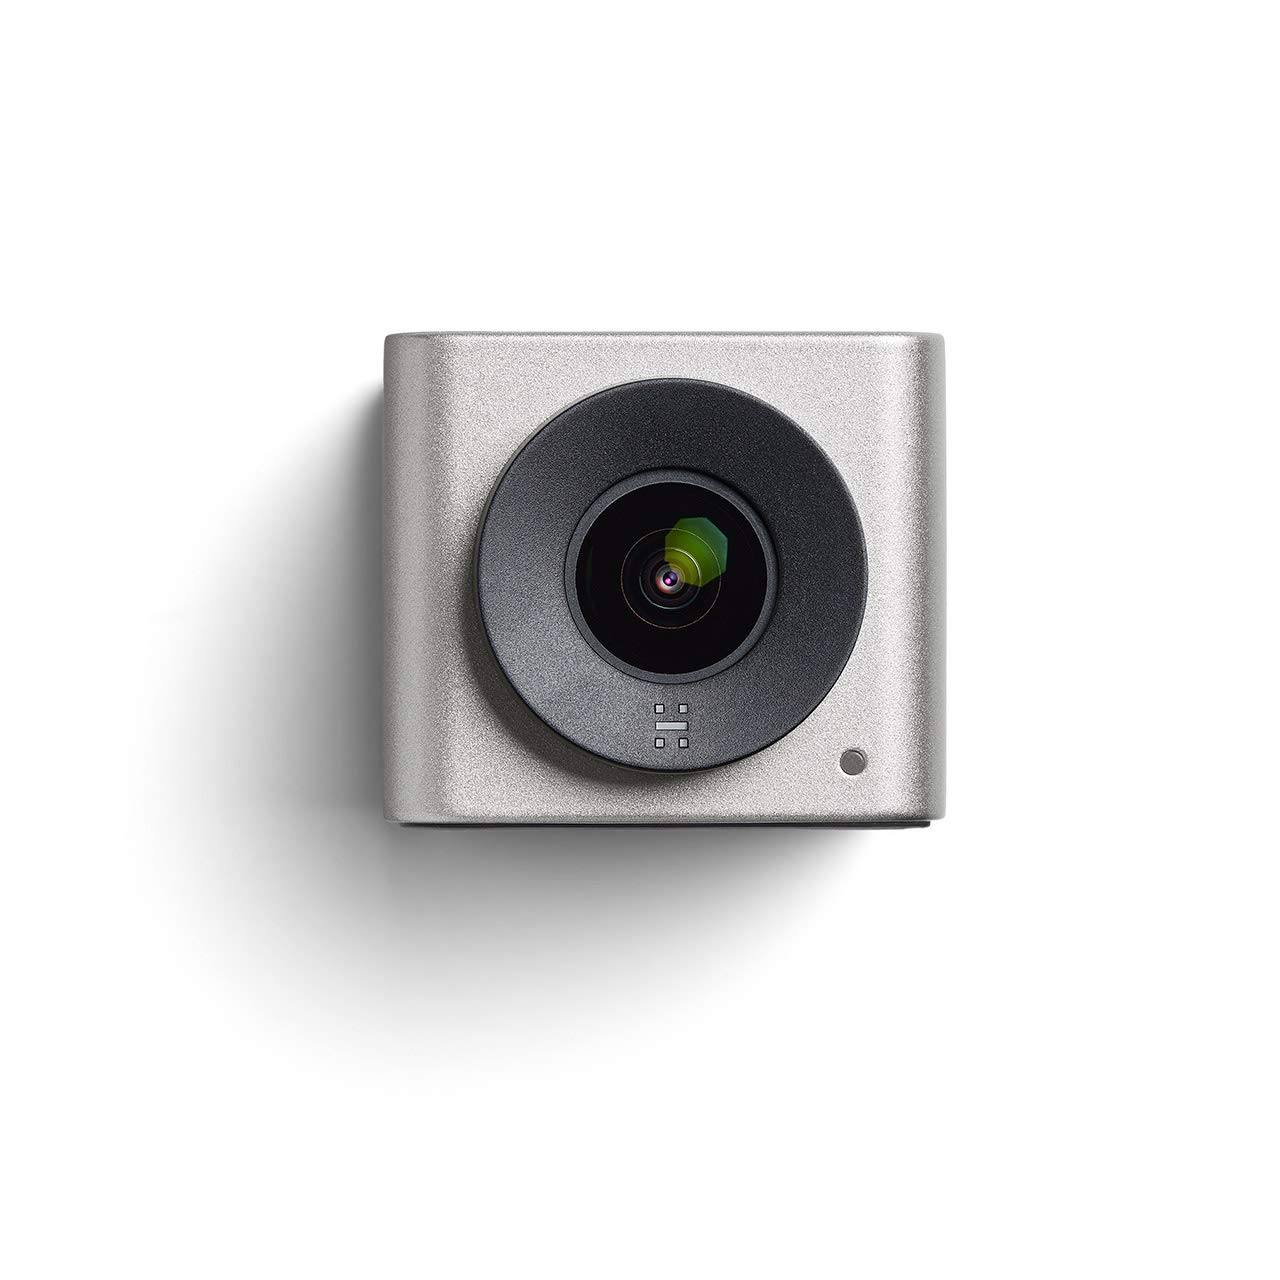 Huddly IQ Camera Including 0.6M USB Cable - Limited Edition: Titanium Gray by Huddly